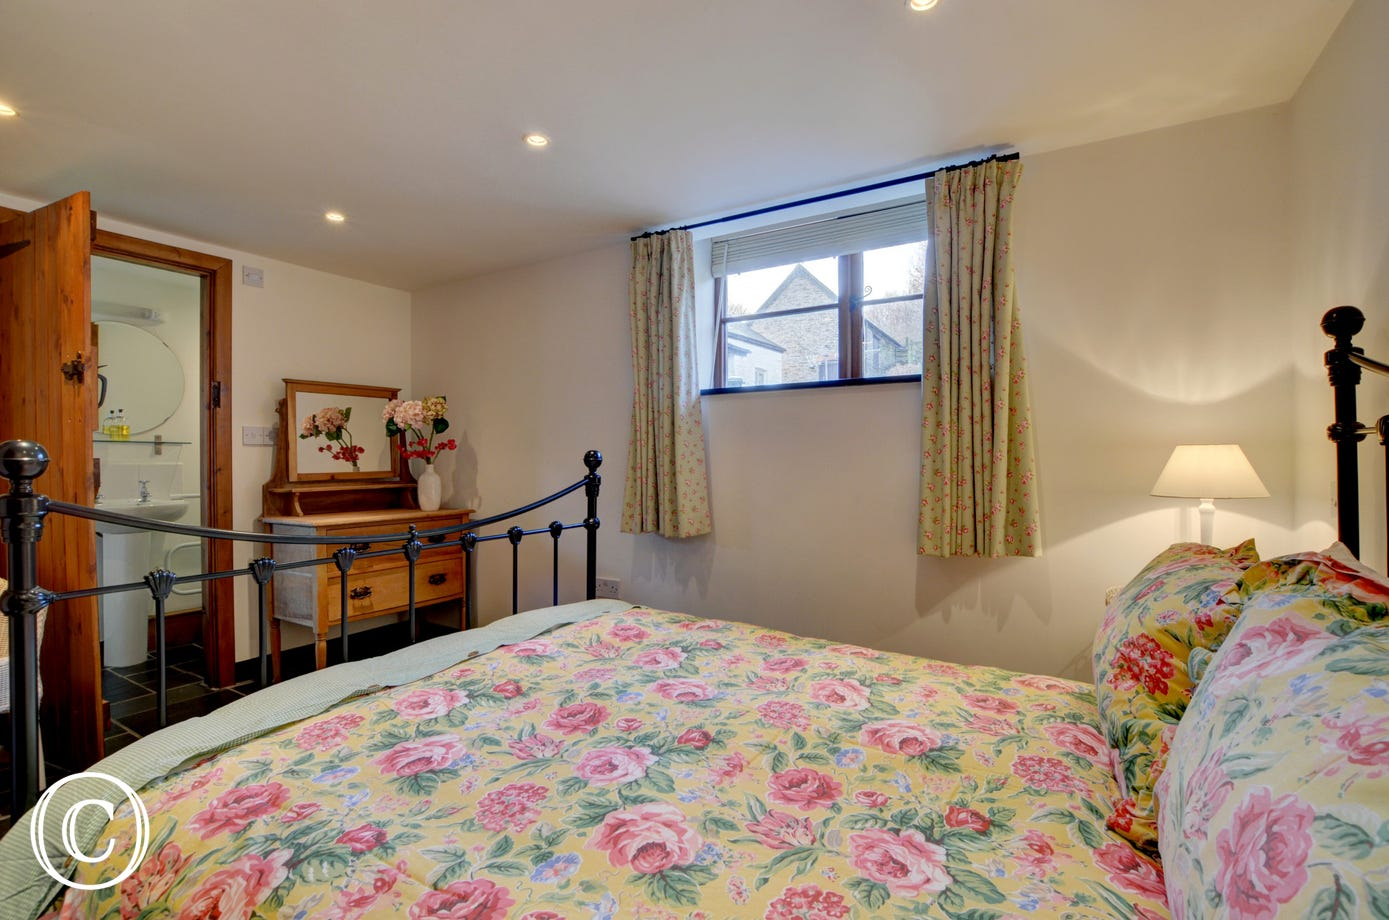 Attractive double bedroom with ensuite bathroom